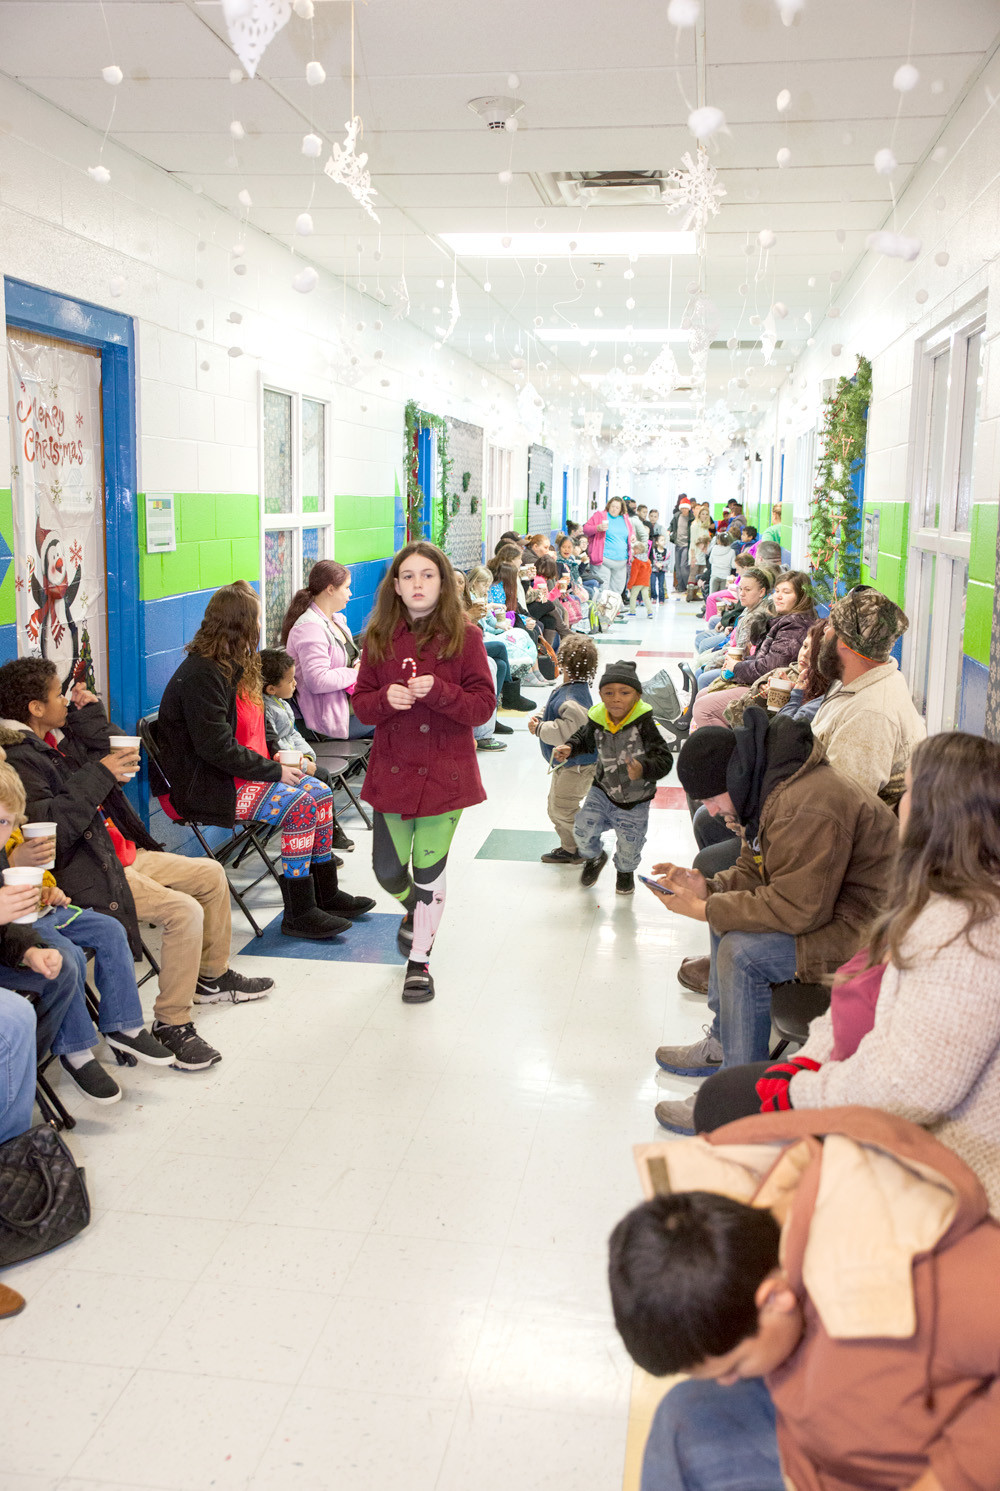 CLEVELANDERS LINED THE HALLS and waited in a heated bus outside of the Boys & Girls Clubs Tucker Unit Saturday morning in anticipation of the Catch the Spirit Christmas Celebration.